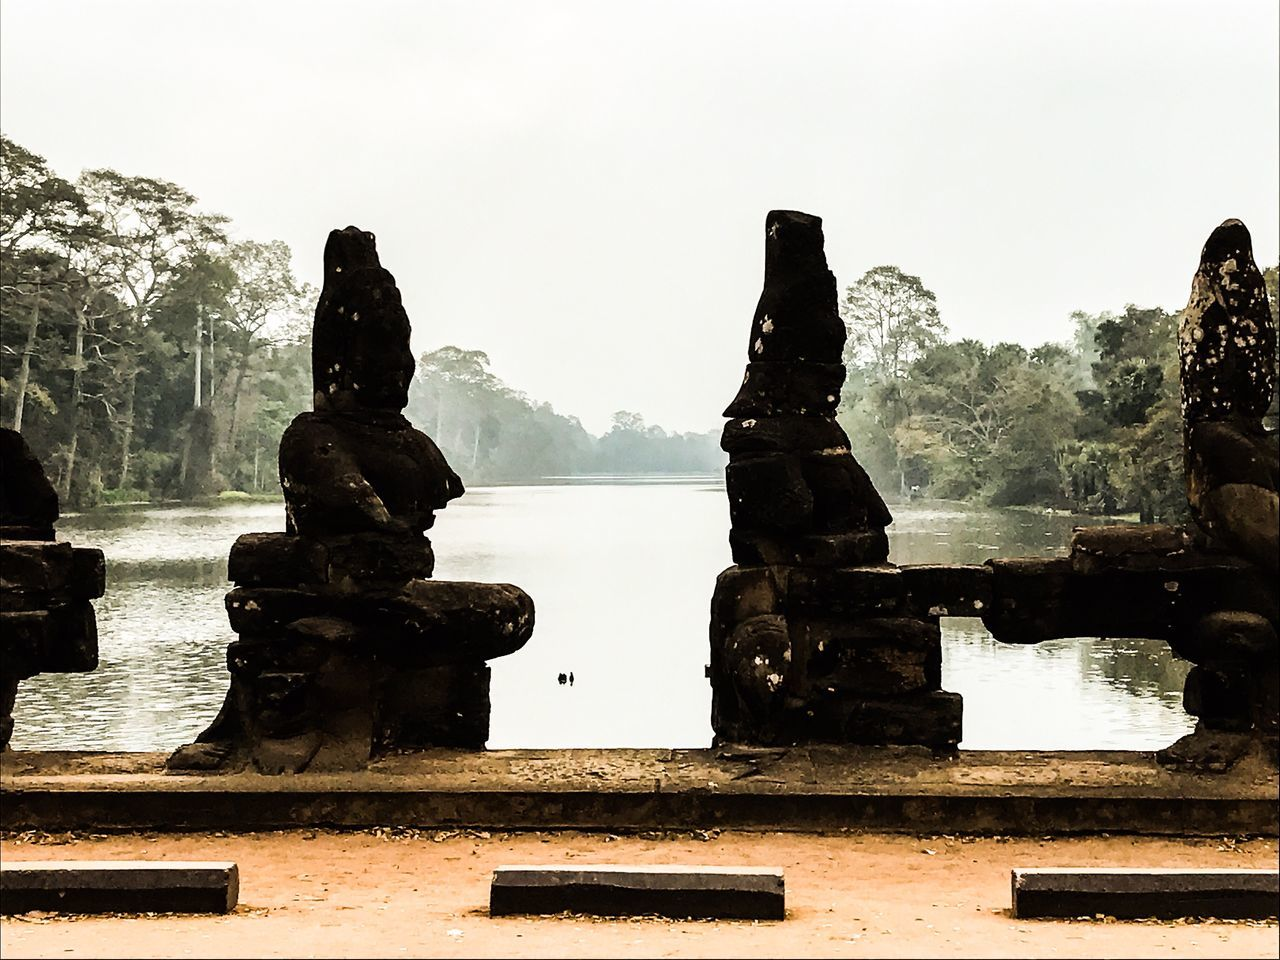 Angkor Thom. Bridge of Angels and demons. Statue Sculpture Travel Destinations Travel Photography Cambodia Angkor Thom